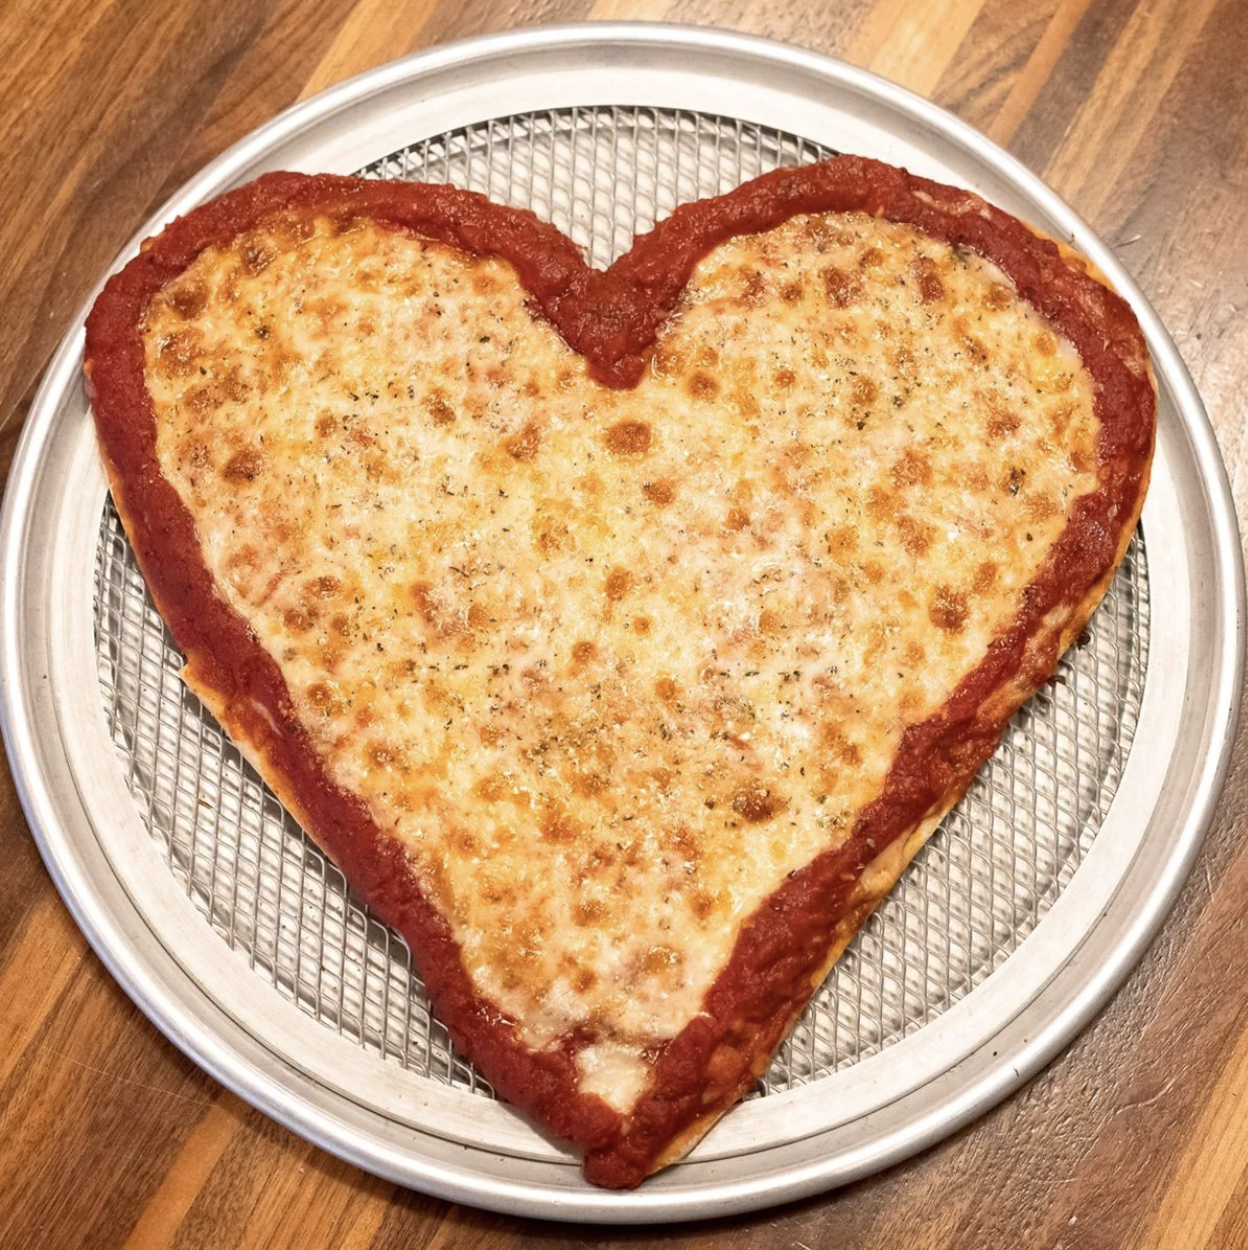 Heart-Shaped Thin Crust Pizza